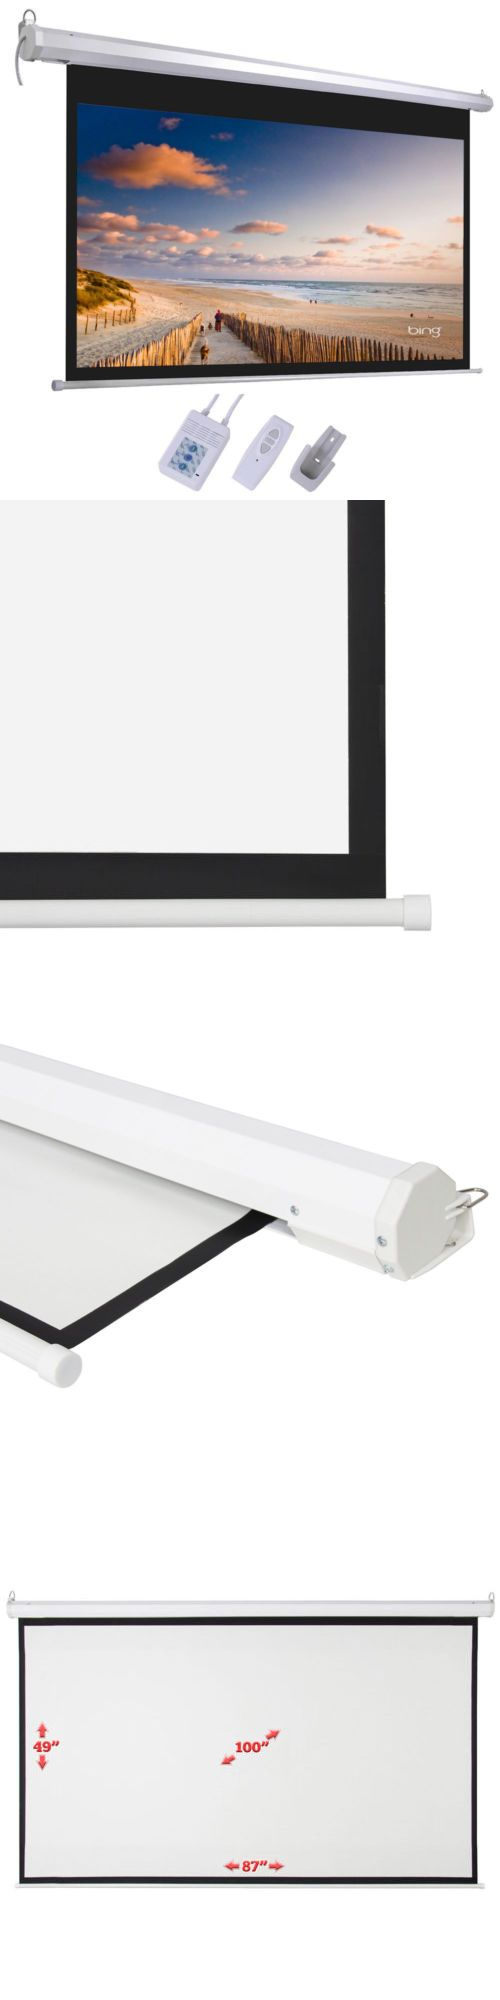 Projection Screens and Material: 100 Electric Motorized Remote Projection Screen Hd Movie Projector White 16:9 -> BUY IT NOW ONLY: $51.59 on eBay!